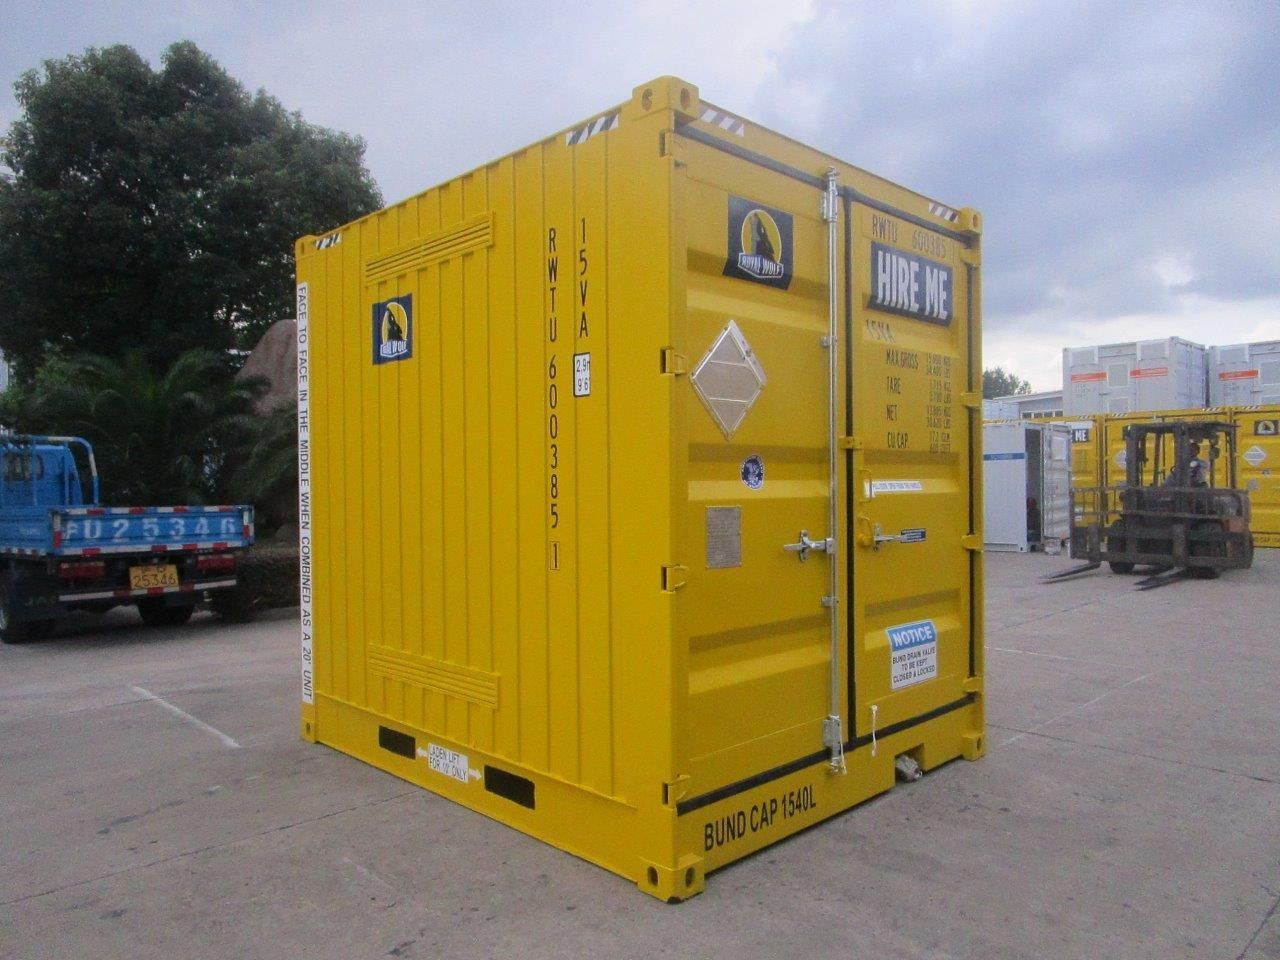 Building Construction Container Solutions Offices Lunch Change Rooms - Containers For Storage